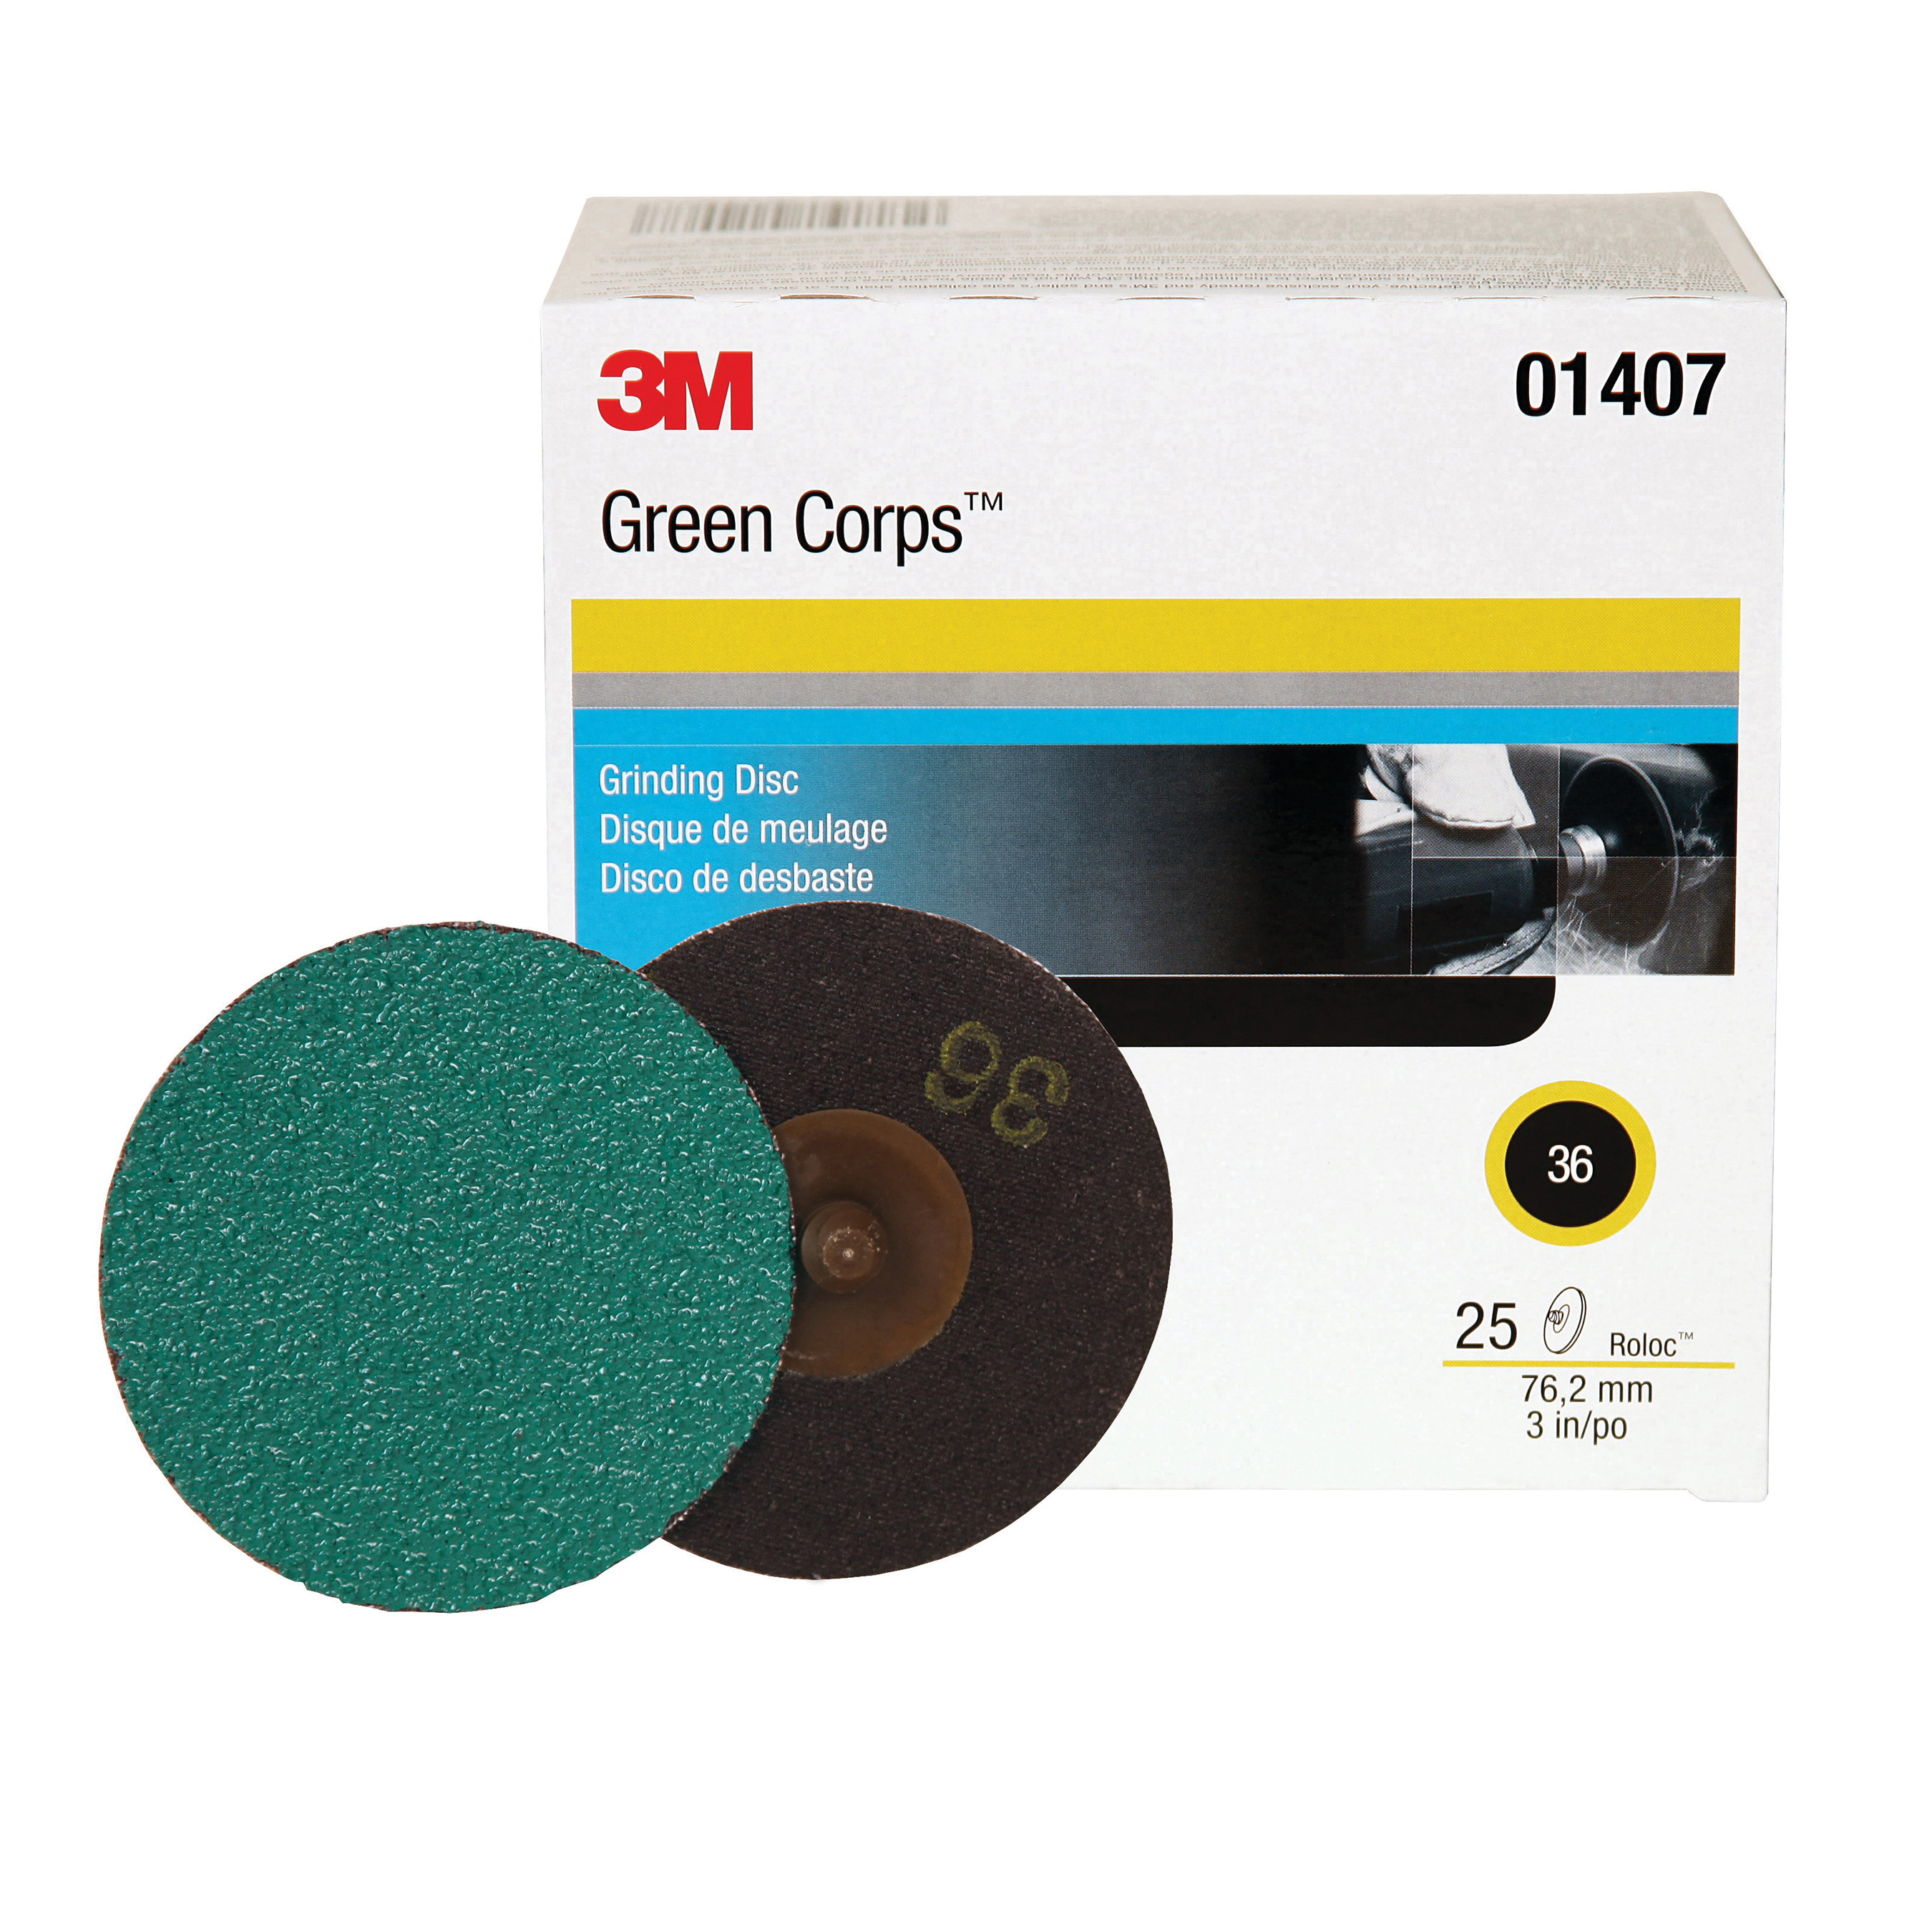 3M™ Green Corps™ Roloc™ 051131-01407 264F Quick-Change Coated Abrasive Disc, 3 in Dia Disc, 36 Grit, Extra Coarse Grade, Aluminum Oxide Abrasive, Roloc™ Attachment